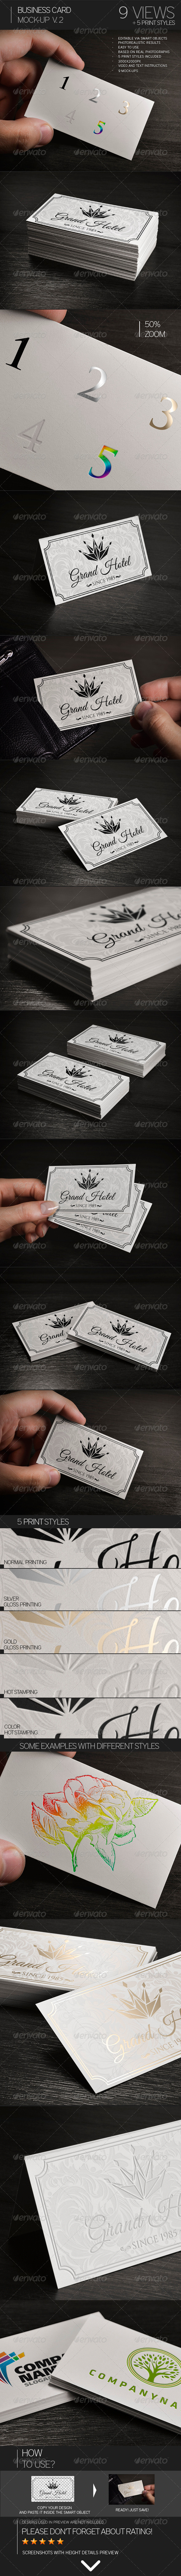 GraphicRiver Business Card Mock-Up Vol.2 8504770